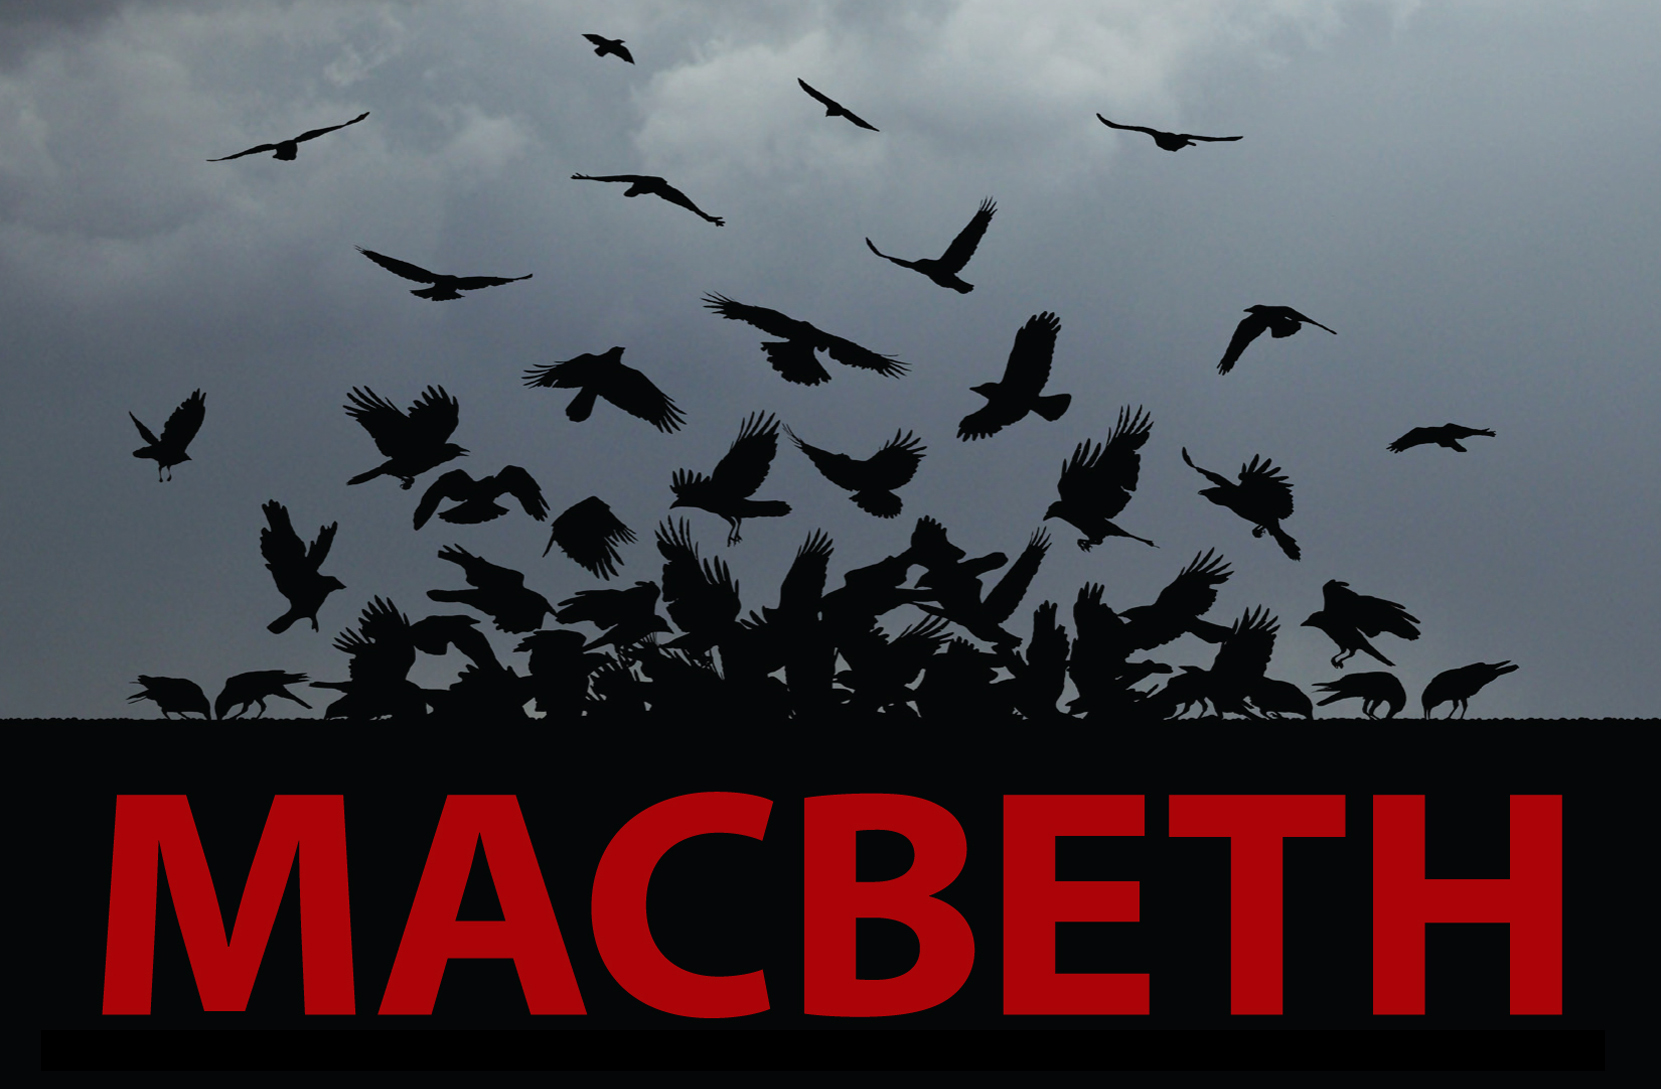 Macbeth Tour